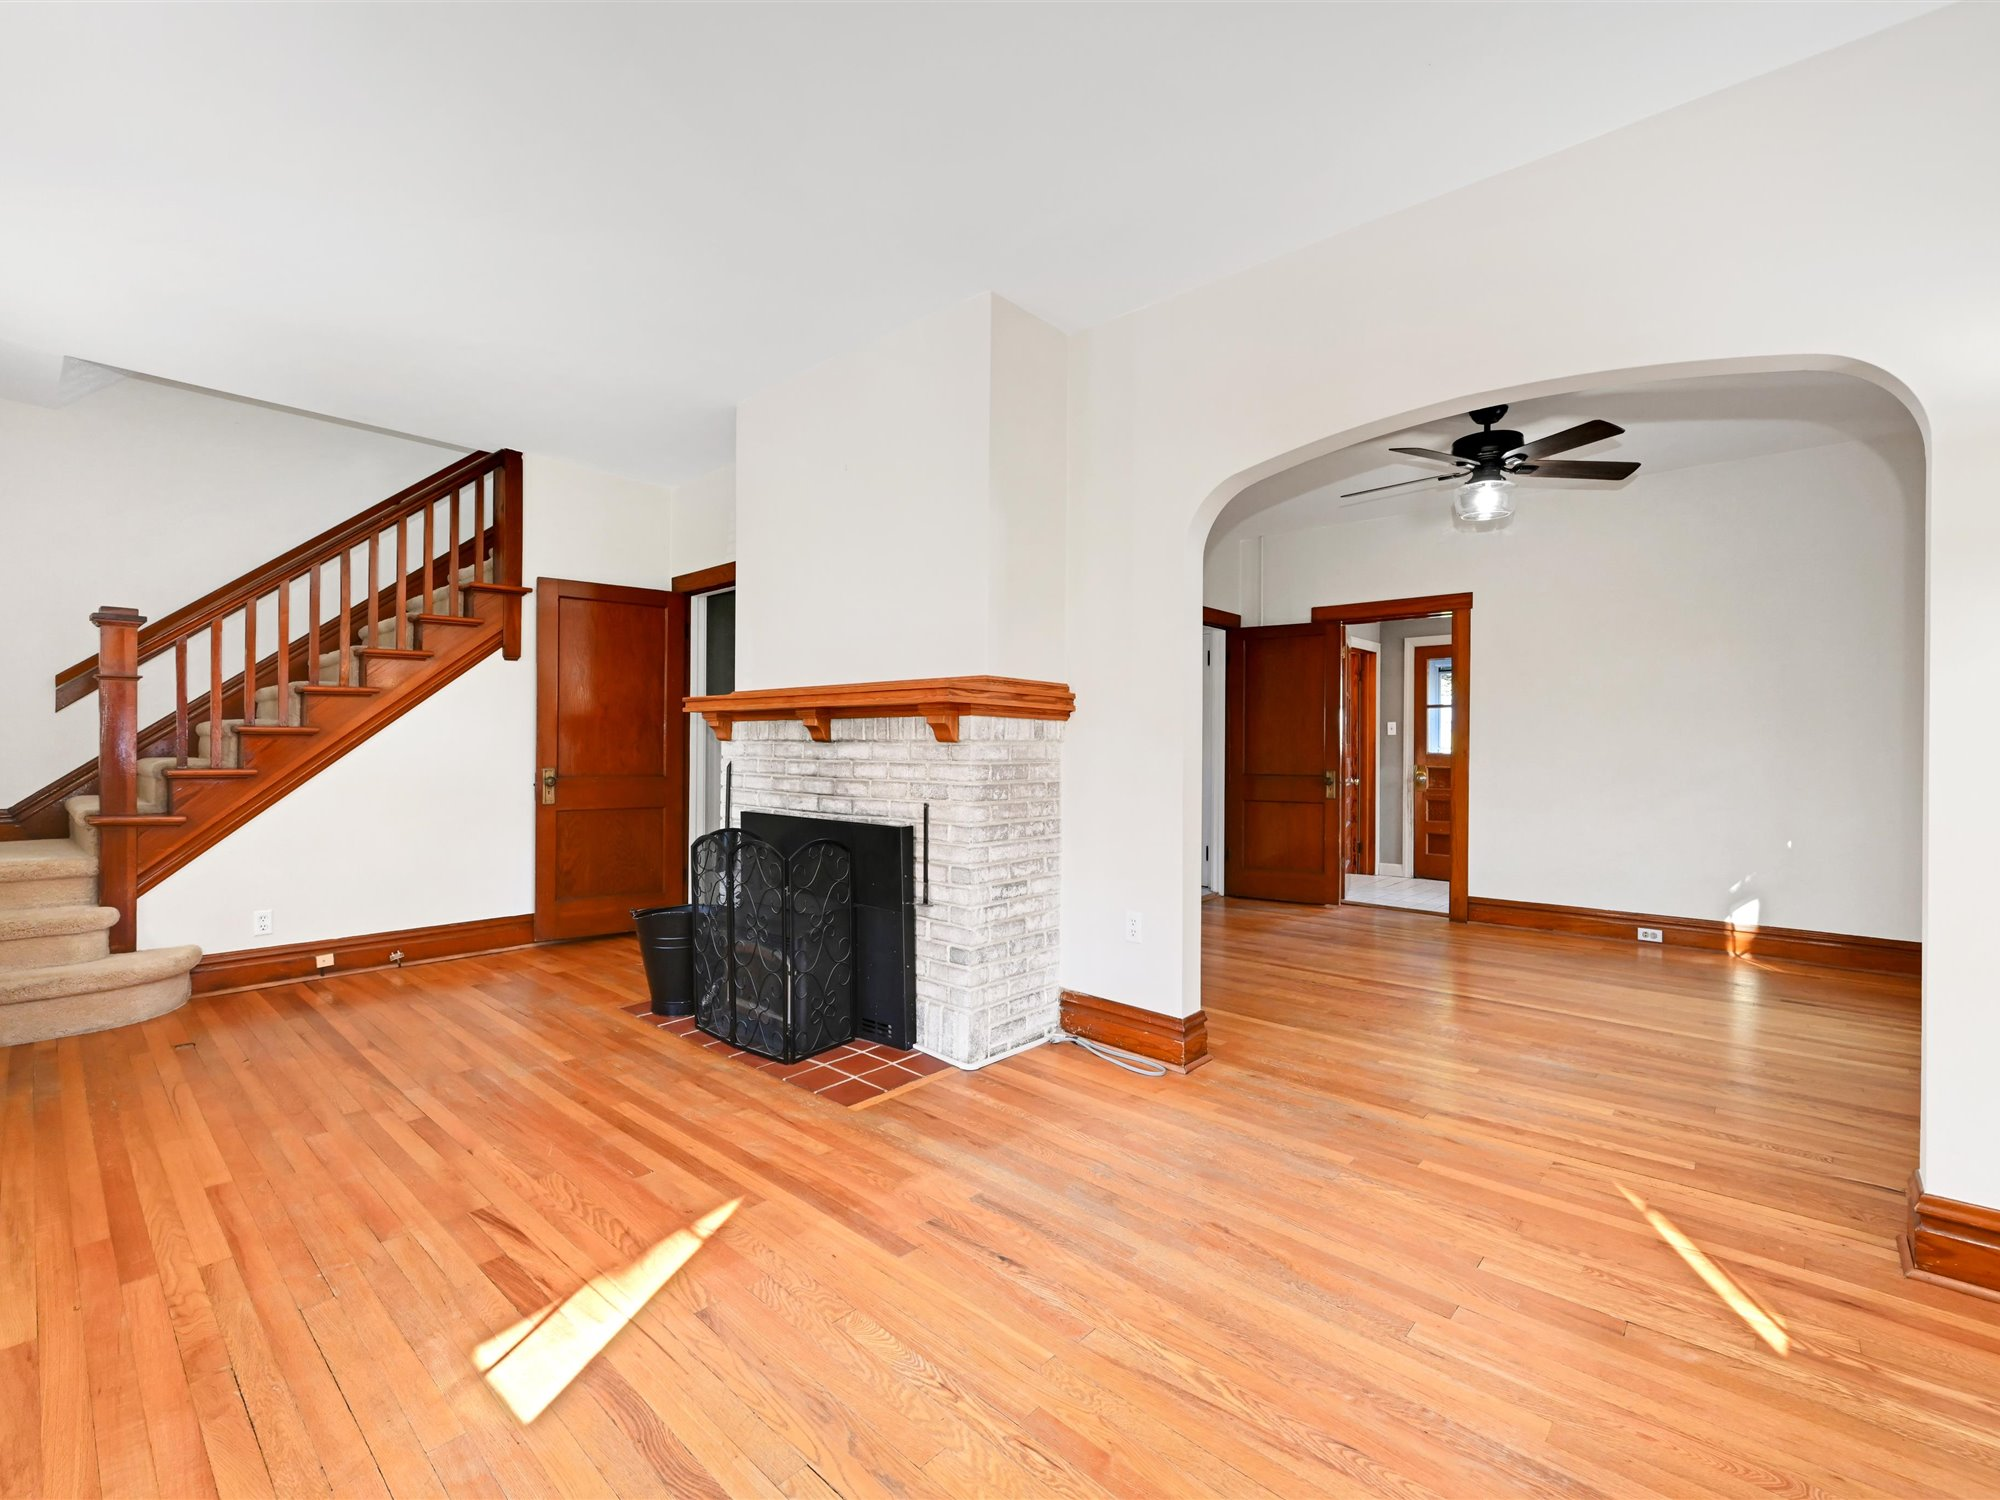 111 Pine Street - Living Room and Fireplace